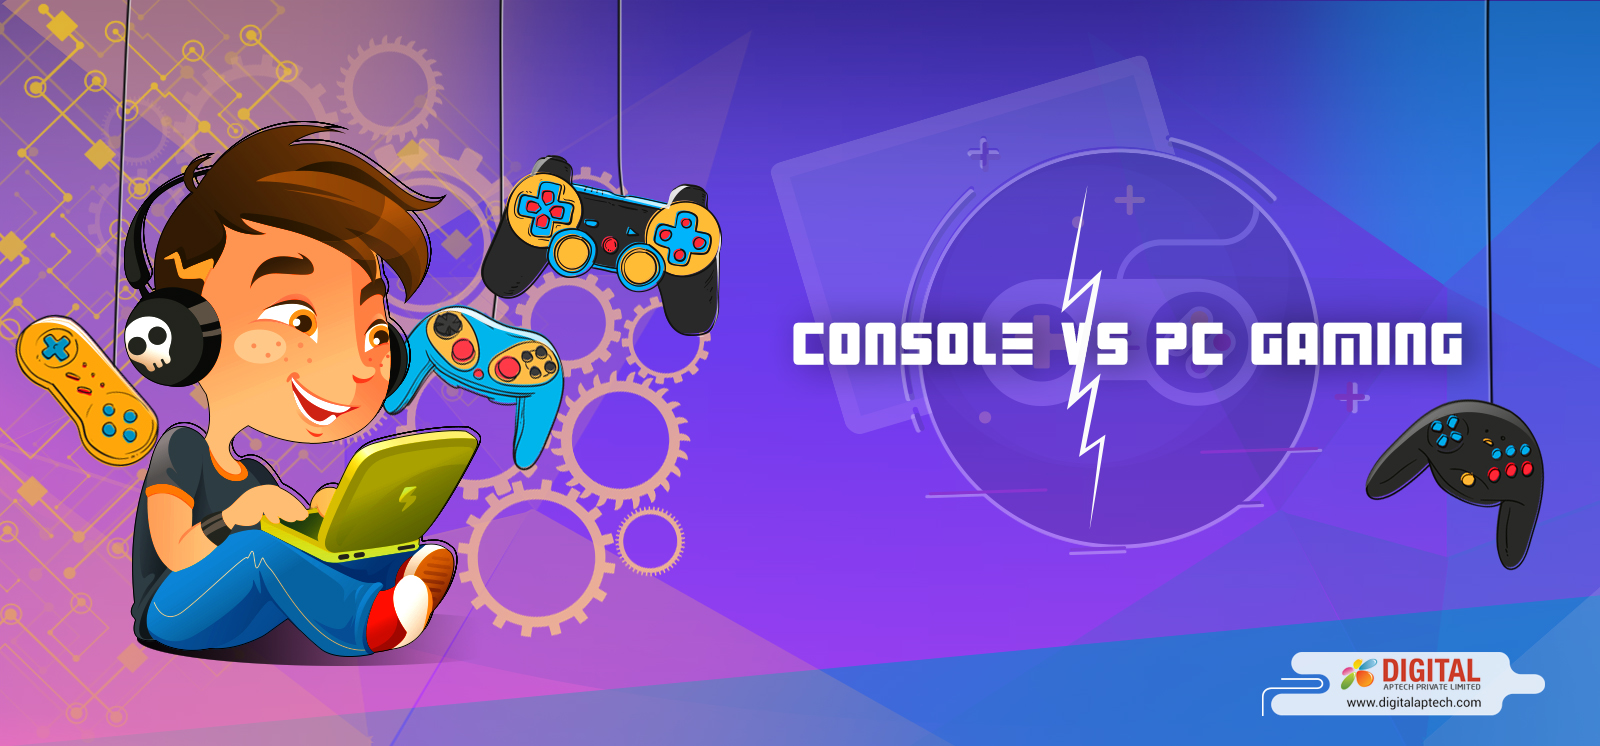 Console or PC Gaming – Which is Better?